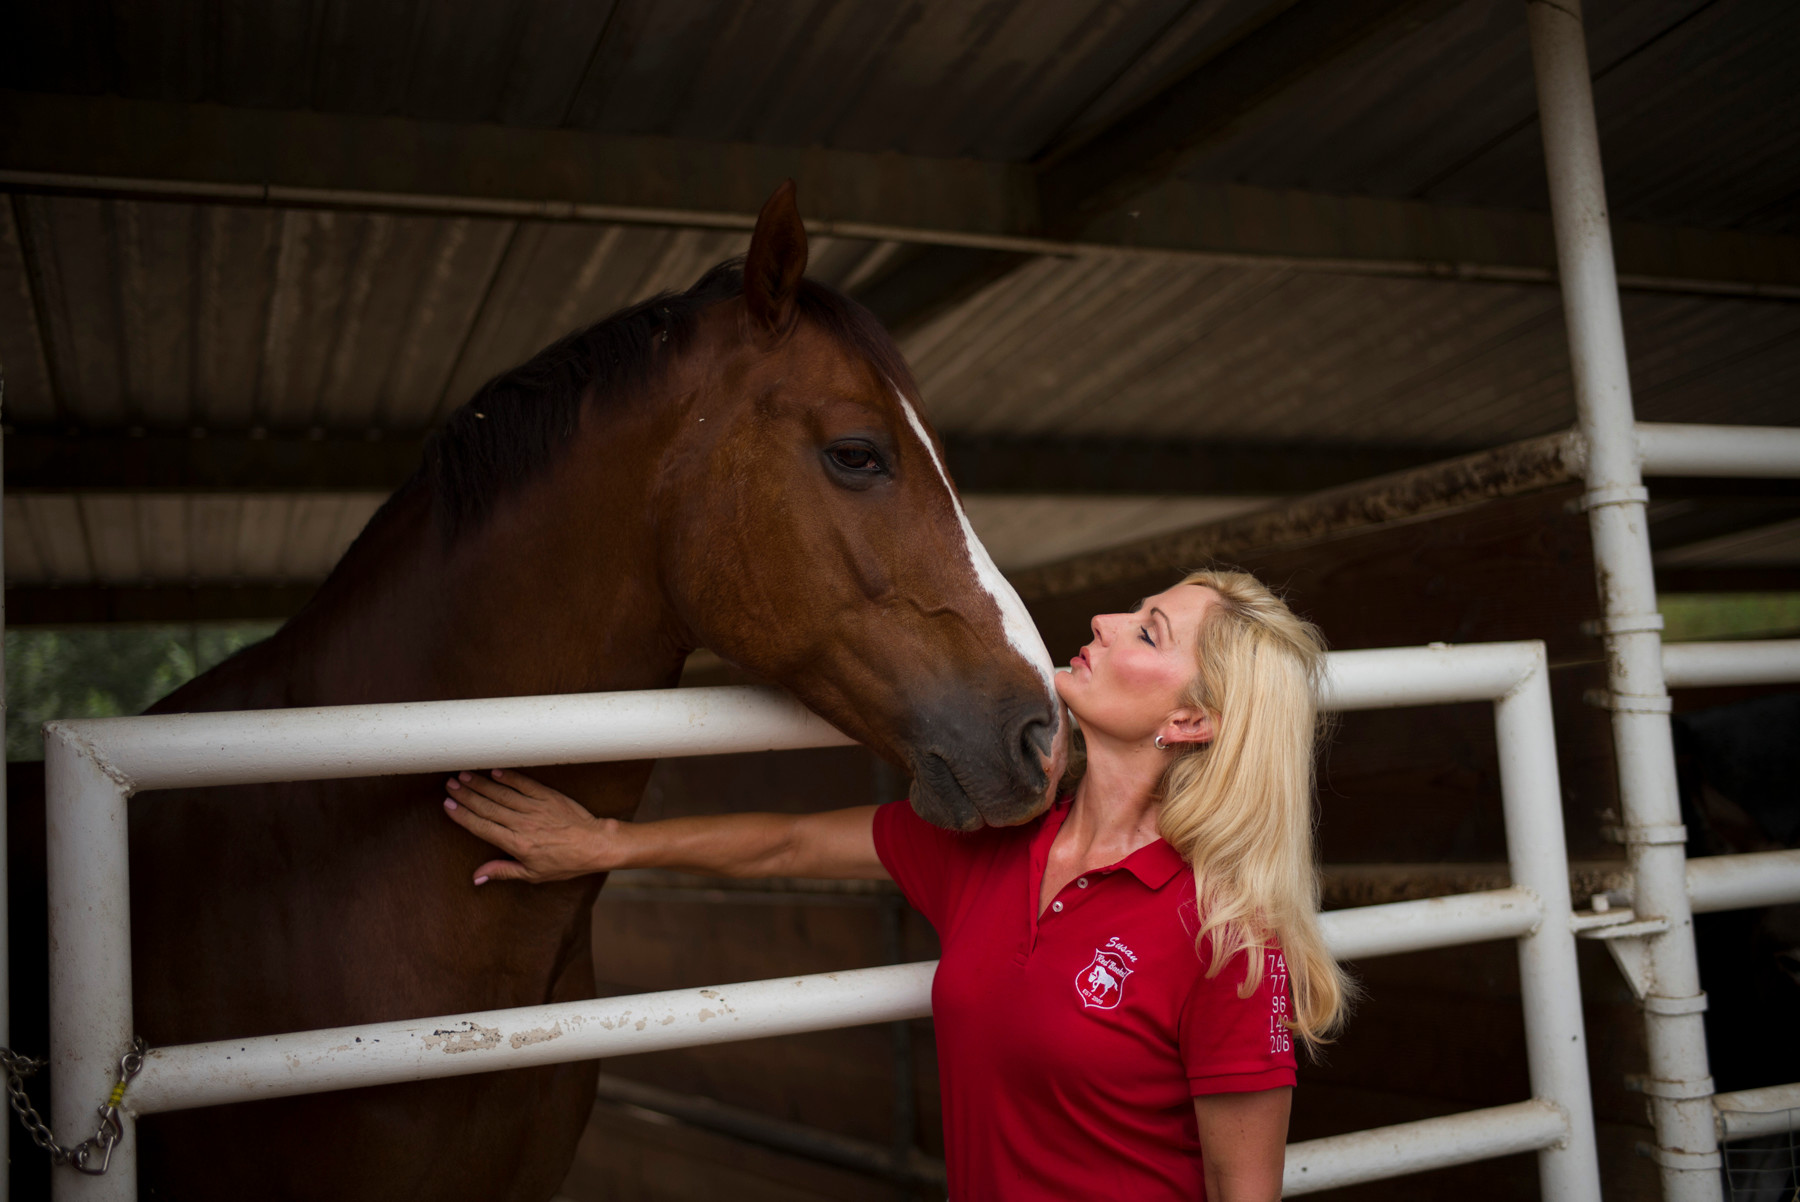 In this July 10, 2014 photo, Susan Peirce, founder of Red Bucket Equine Rescue, bonds with a rescued horse at the Red Bucket Equine Rescue in Chino Hills, Calif. Almost every horse rescue in the country is running out of room or money or both. When the recession started, some people had to dump their horses and discontinue donations to horse charities.